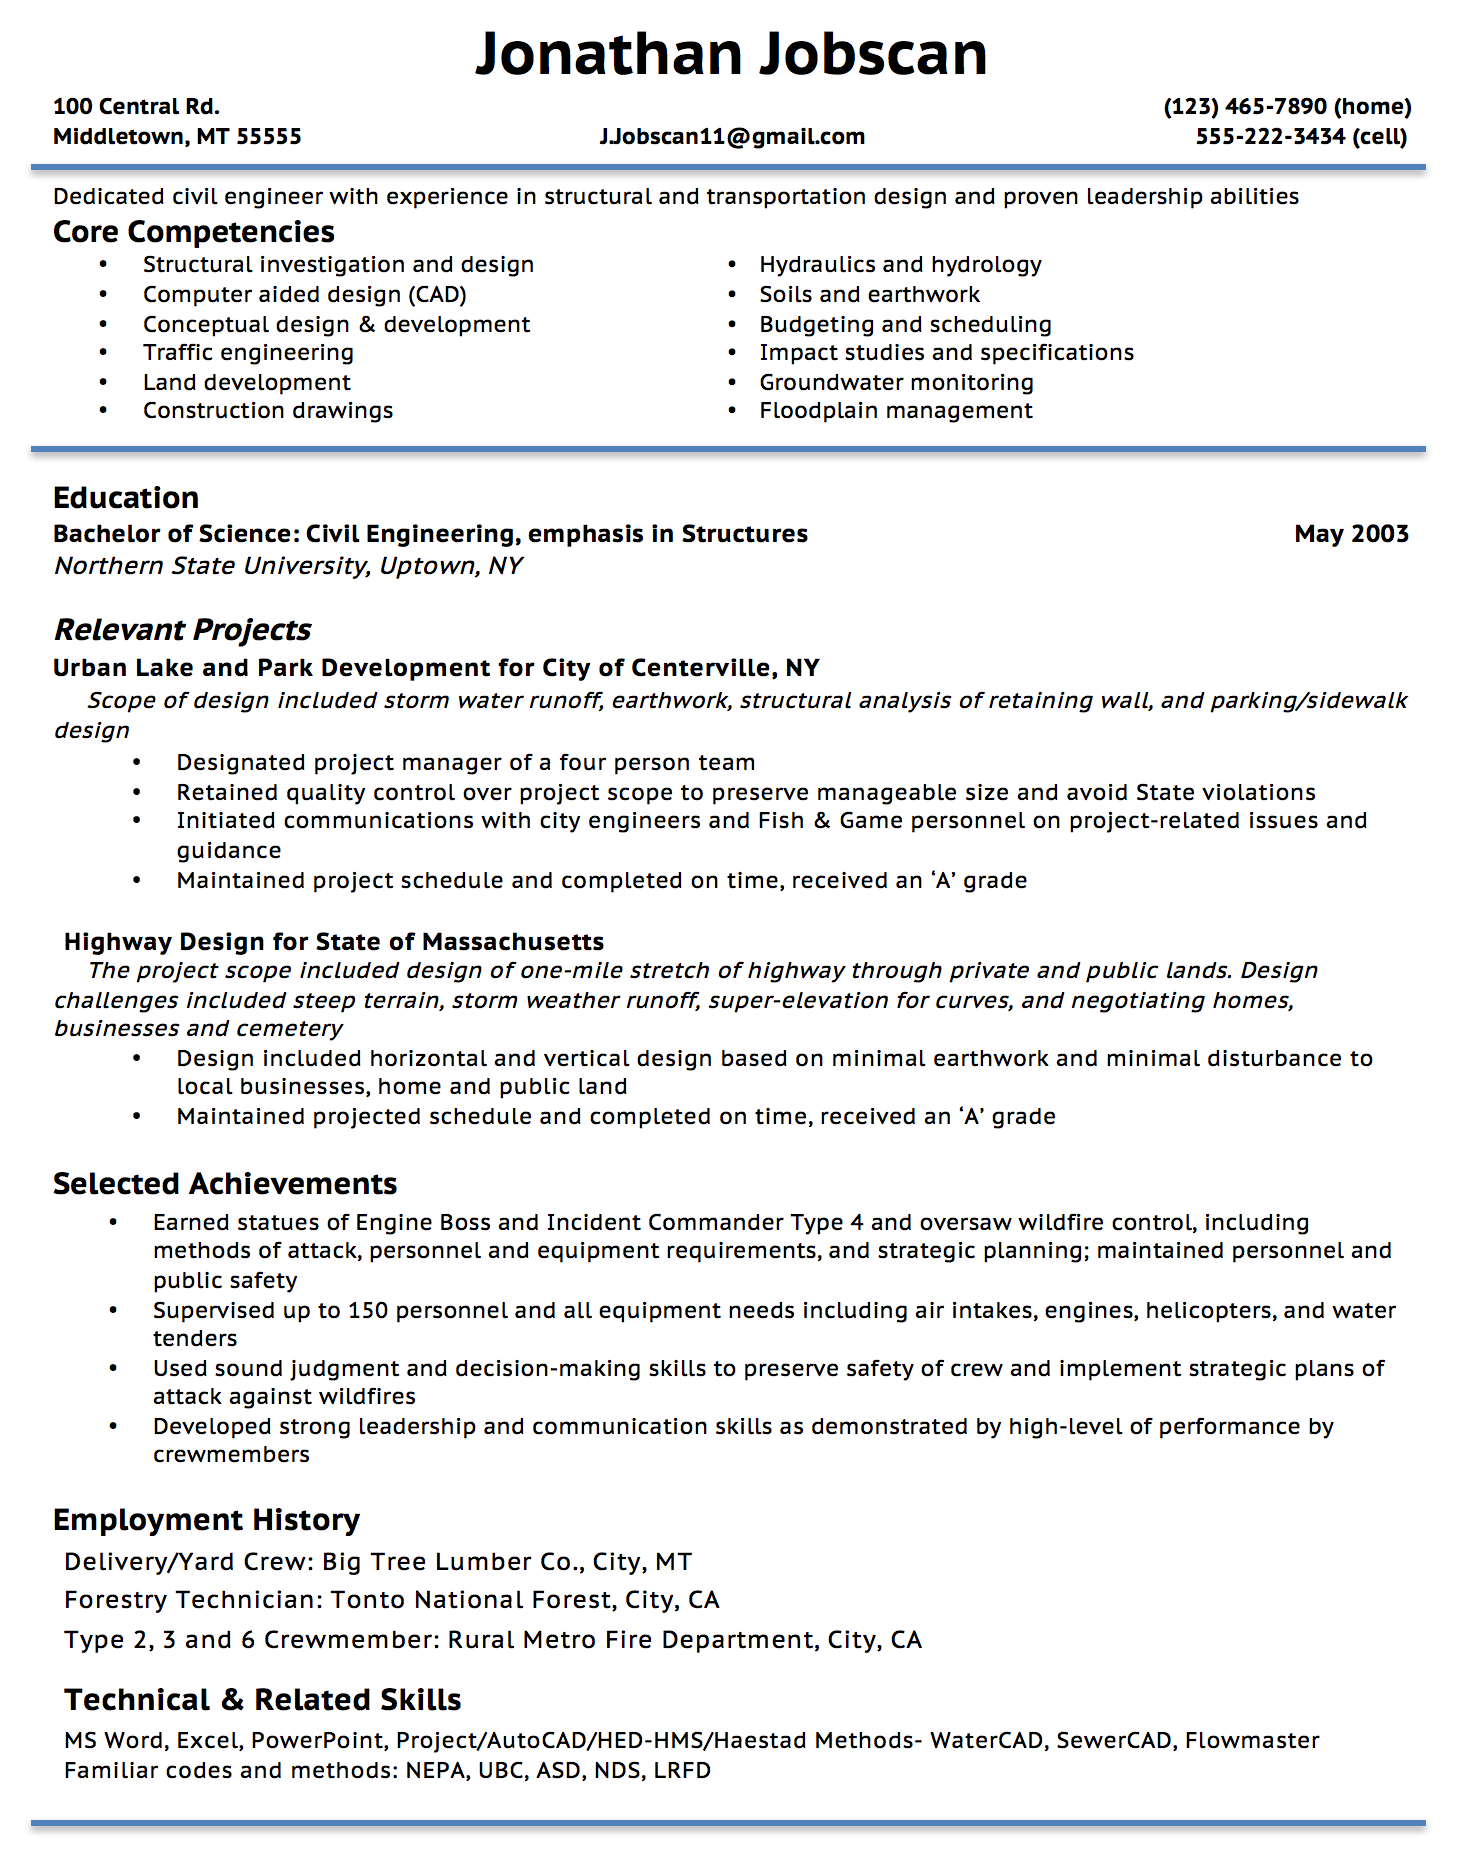 Opposenewapstandardsus  Mesmerizing Resume Writing Guide  Jobscan With Entrancing Example Of A Functional Resume Format With Enchanting Sample Flight Attendant Resume Also Office Manager Skills Resume In Addition Monster Power Resume Search And Director Of Business Development Resume As Well As Resume Template For Wordpad Additionally What Is A Resume For A Job Application From Jobscanco With Opposenewapstandardsus  Entrancing Resume Writing Guide  Jobscan With Enchanting Example Of A Functional Resume Format And Mesmerizing Sample Flight Attendant Resume Also Office Manager Skills Resume In Addition Monster Power Resume Search From Jobscanco